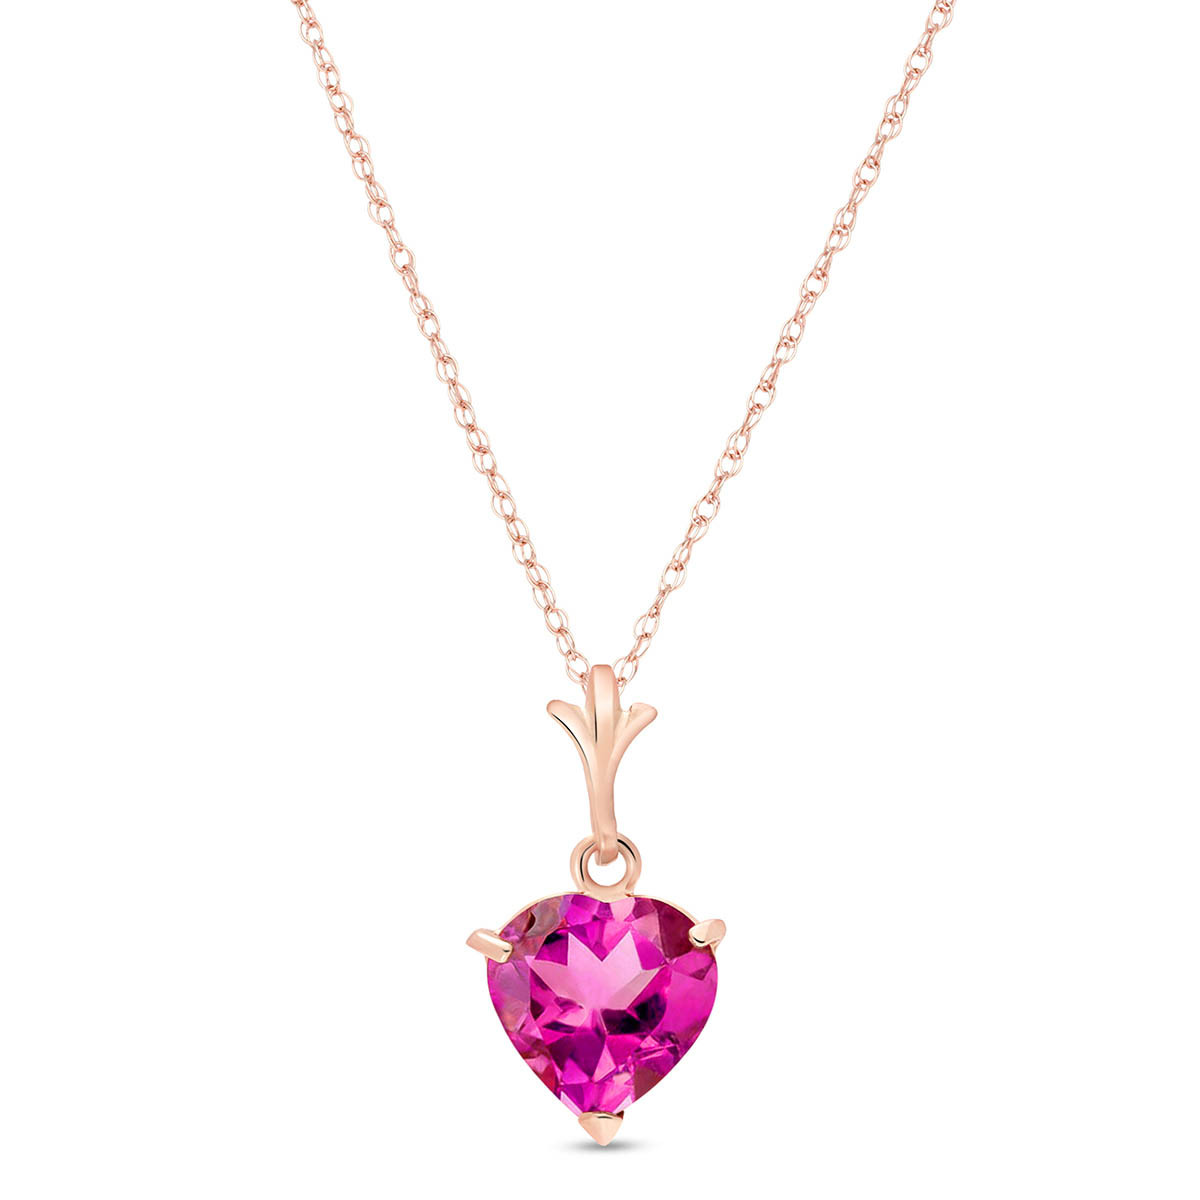 Pink Topaz Heart Pendant Necklace 1.15 ct in 9ct Rose Gold